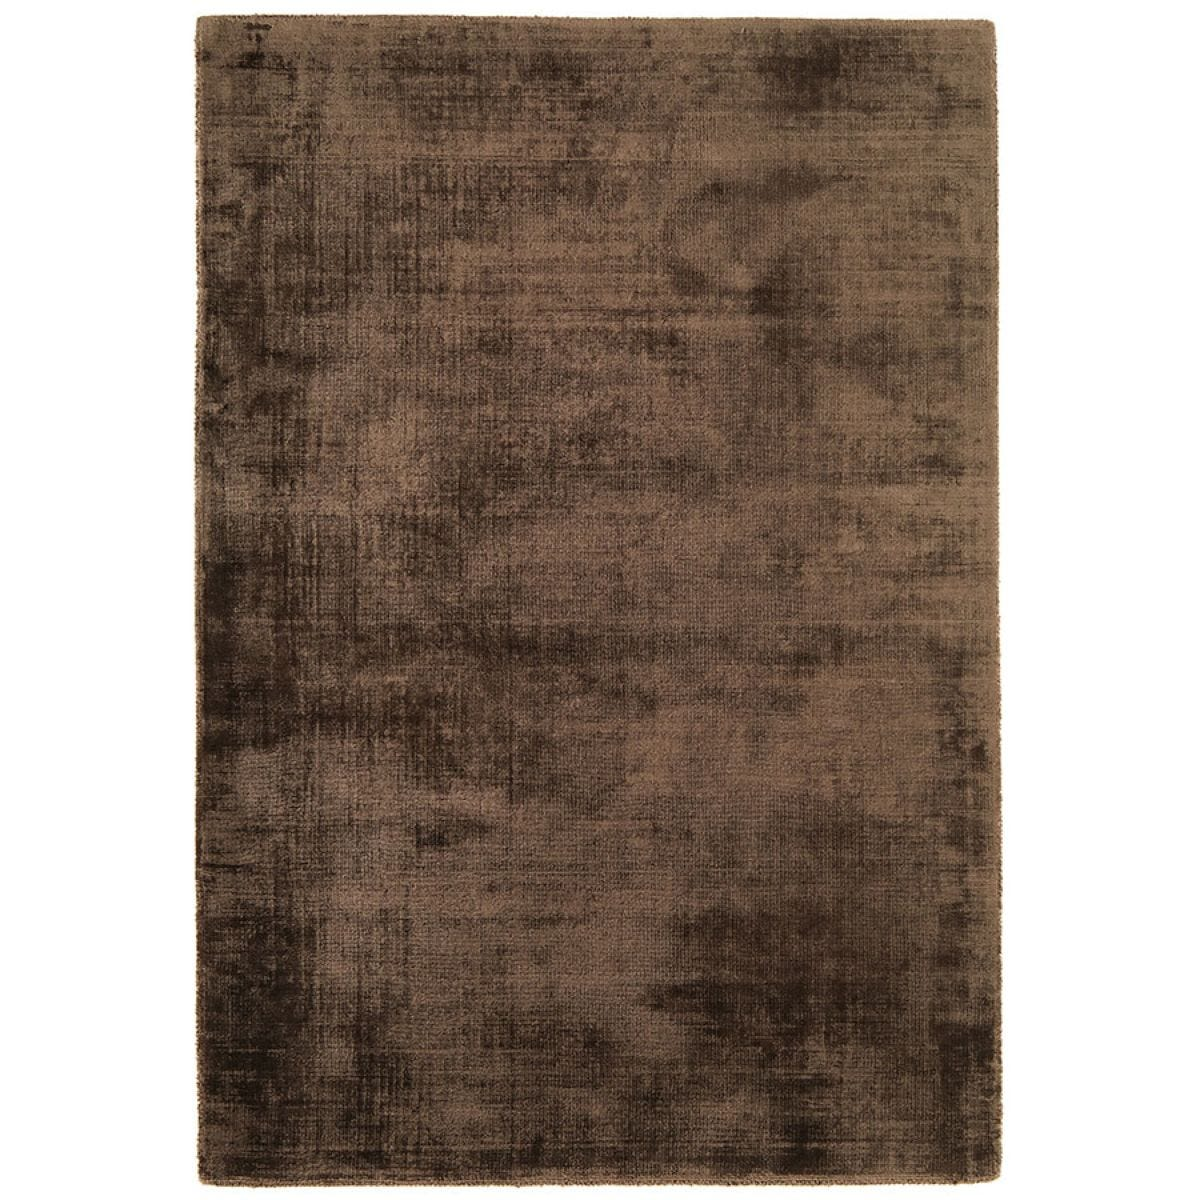 Asiatic Blade Rug , 120 x 170cm - Chocolate